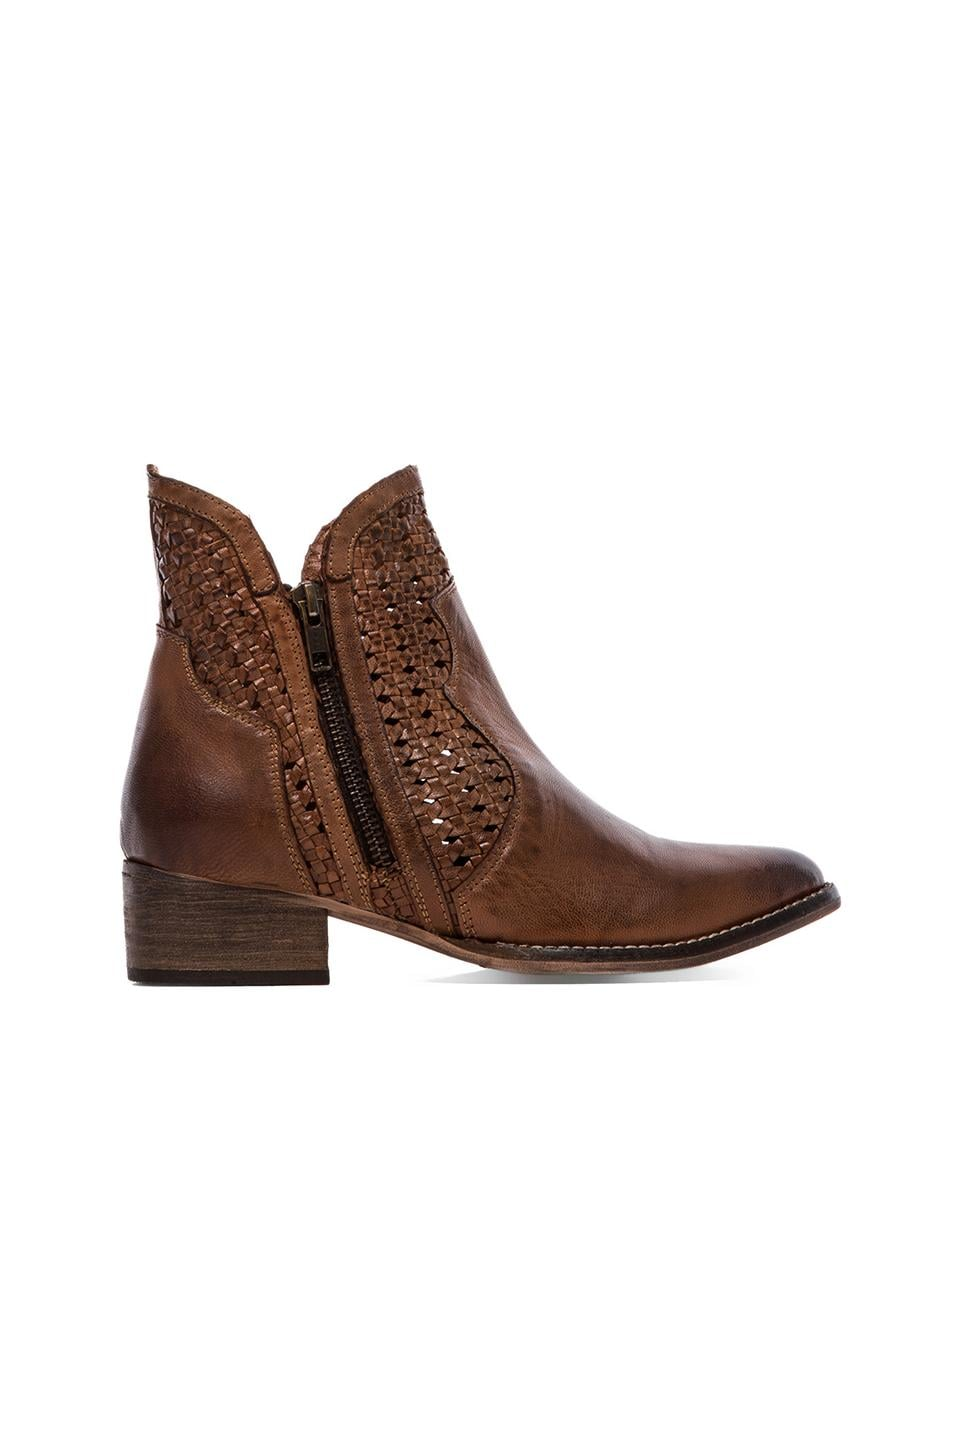 Seychelles Flip a Coin Boot in Light Brown